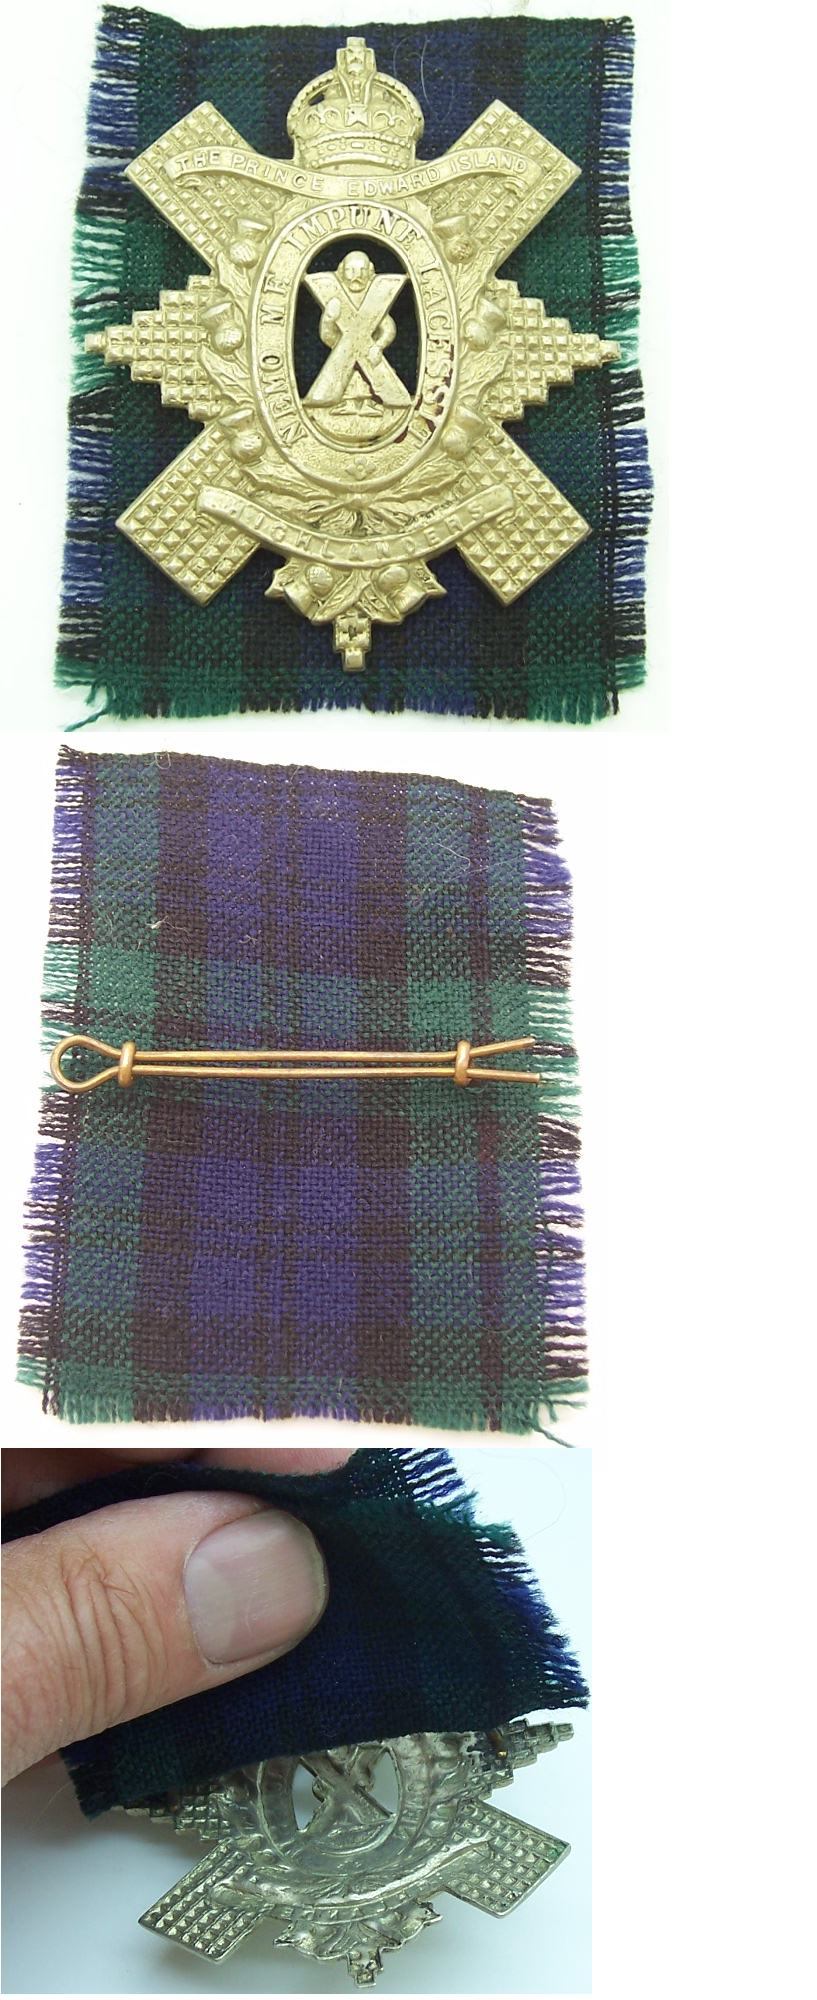 Prince Edward Island Highlanders Cap Badge